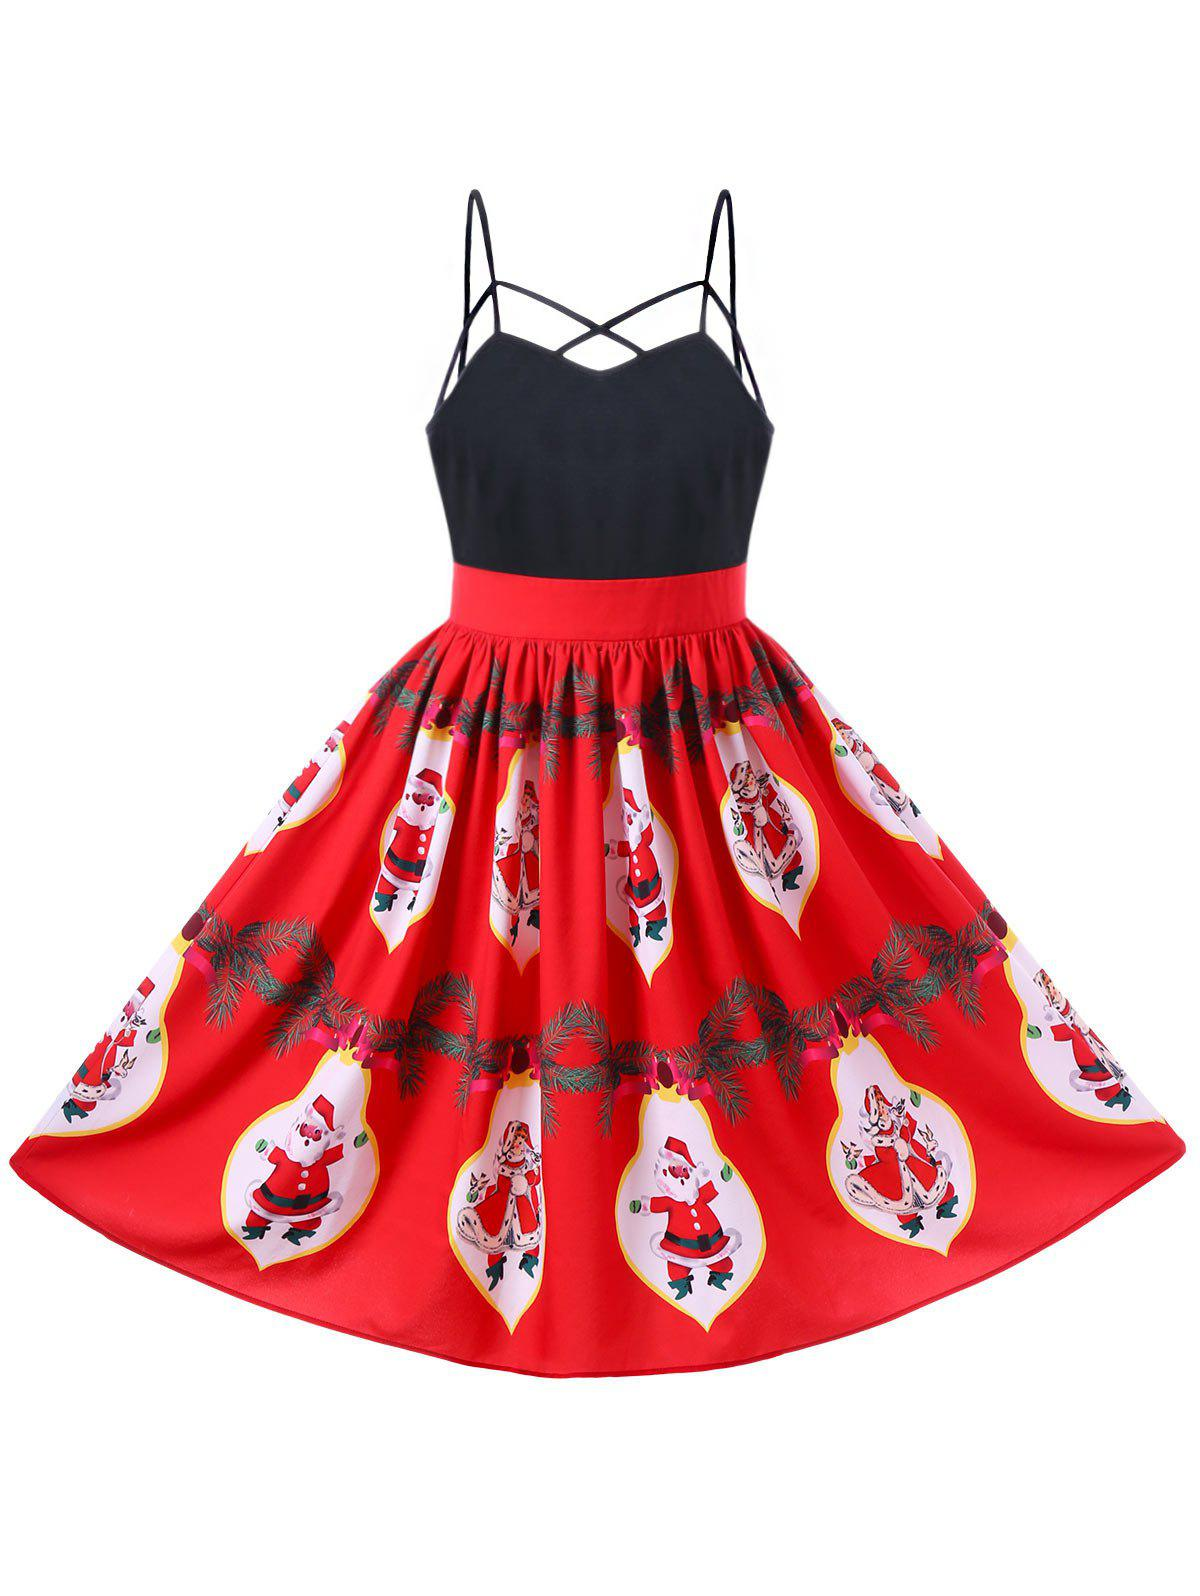 Christmas Santa Claus Strappy 50s Swing DressWOMEN<br><br>Size: M; Color: RED; Style: Vintage; Material: Polyester; Silhouette: A-Line; Dresses Length: Knee-Length; Neckline: Spaghetti Strap; Sleeve Length: Sleeveless; Pattern Type: Character; With Belt: No; Season: Fall,Spring,Summer; Weight: 0.3000kg; Package Contents: 1 x Dress;